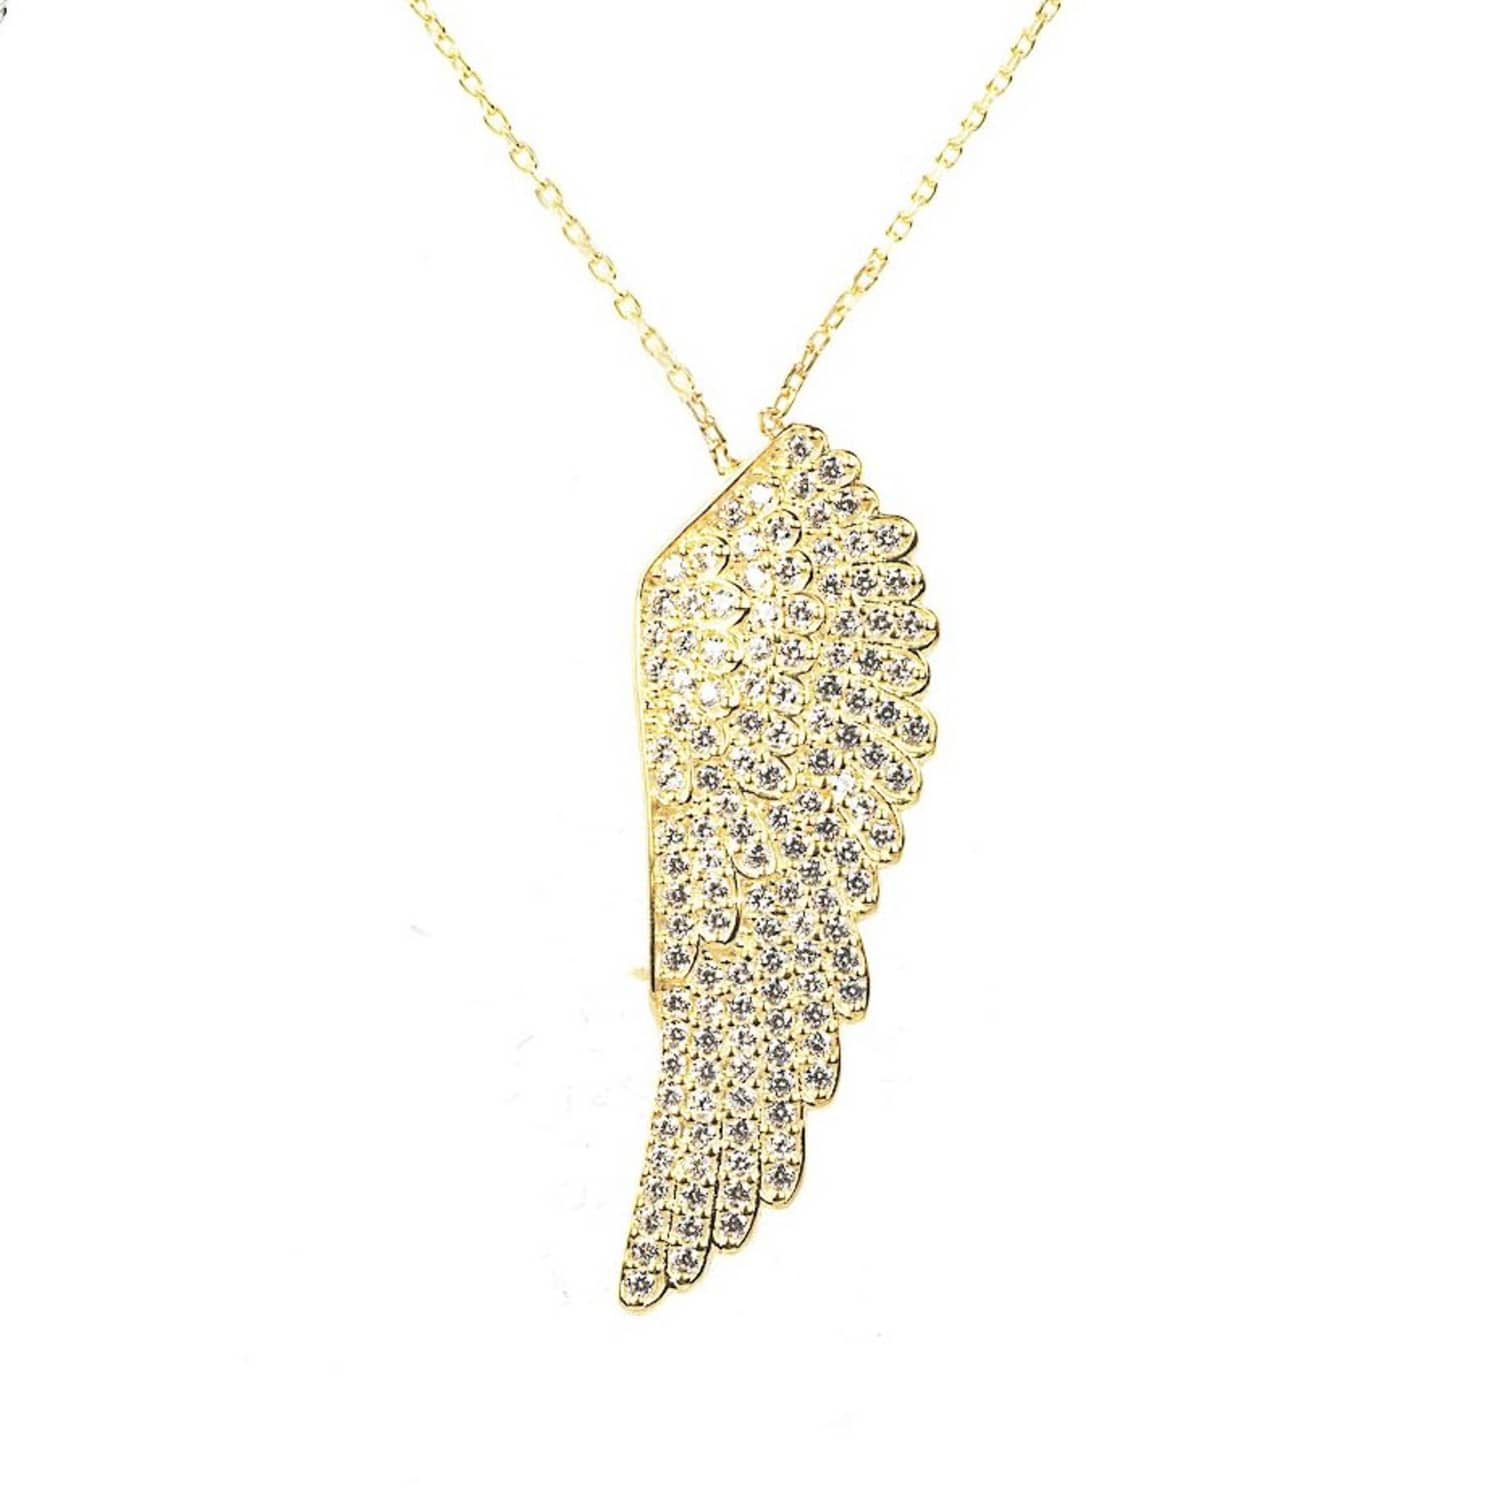 jewelry necklace overstock free product gold today wing shipping angel diamond white tdw watches